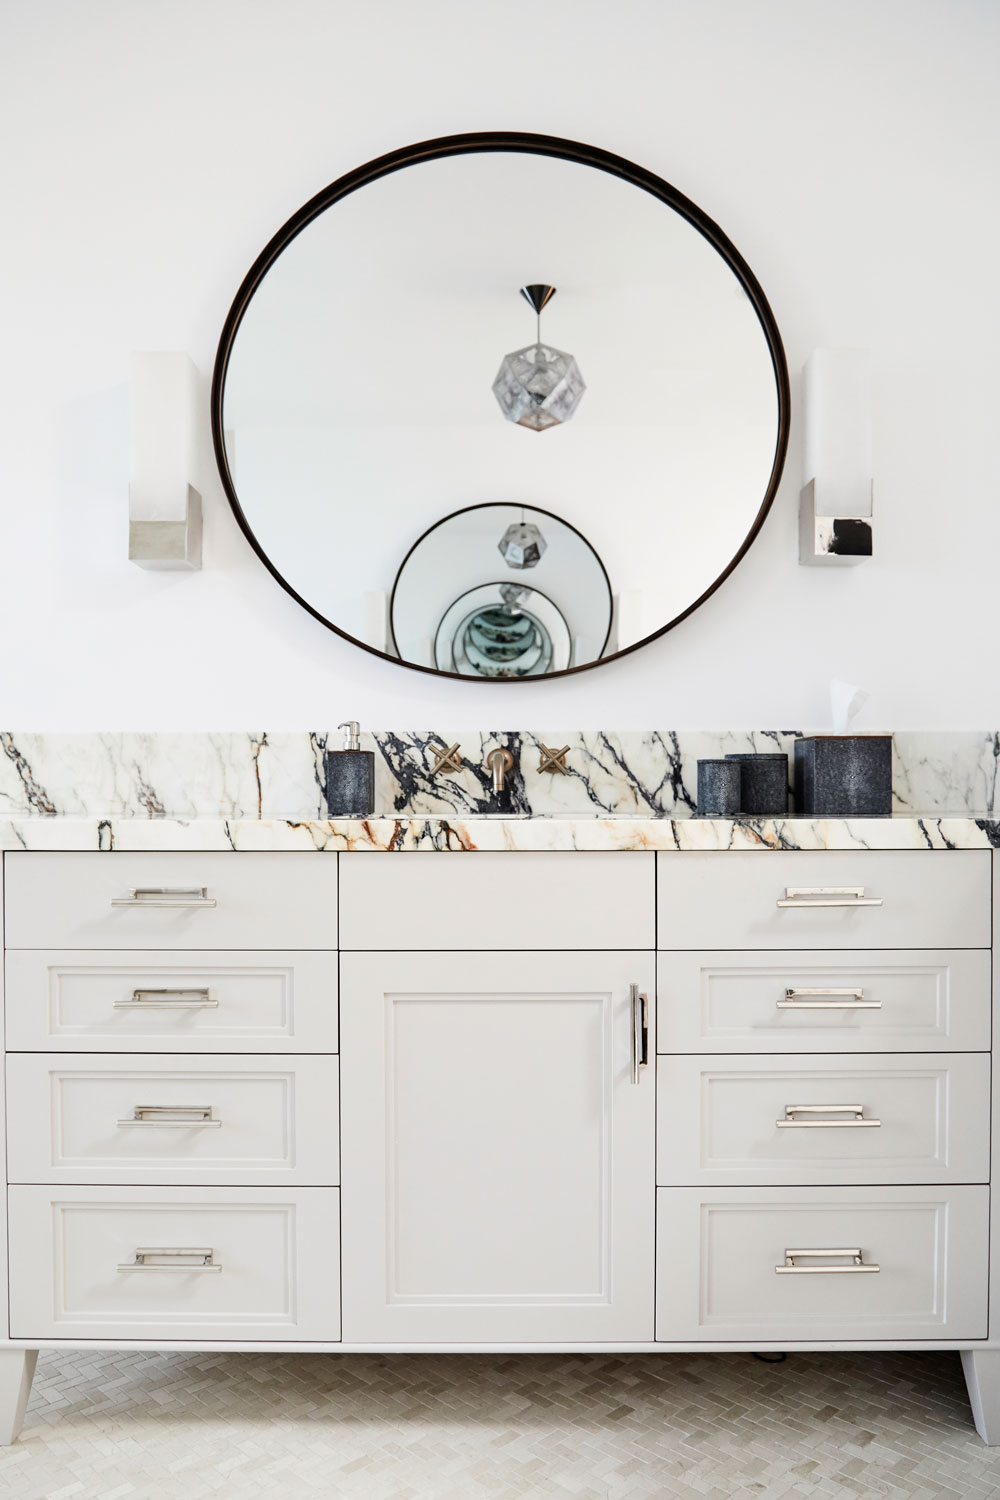 Oversized bronze mirrors framed by polished nickel sconces from Kelley Wearstler. Who says you can't mix metals?